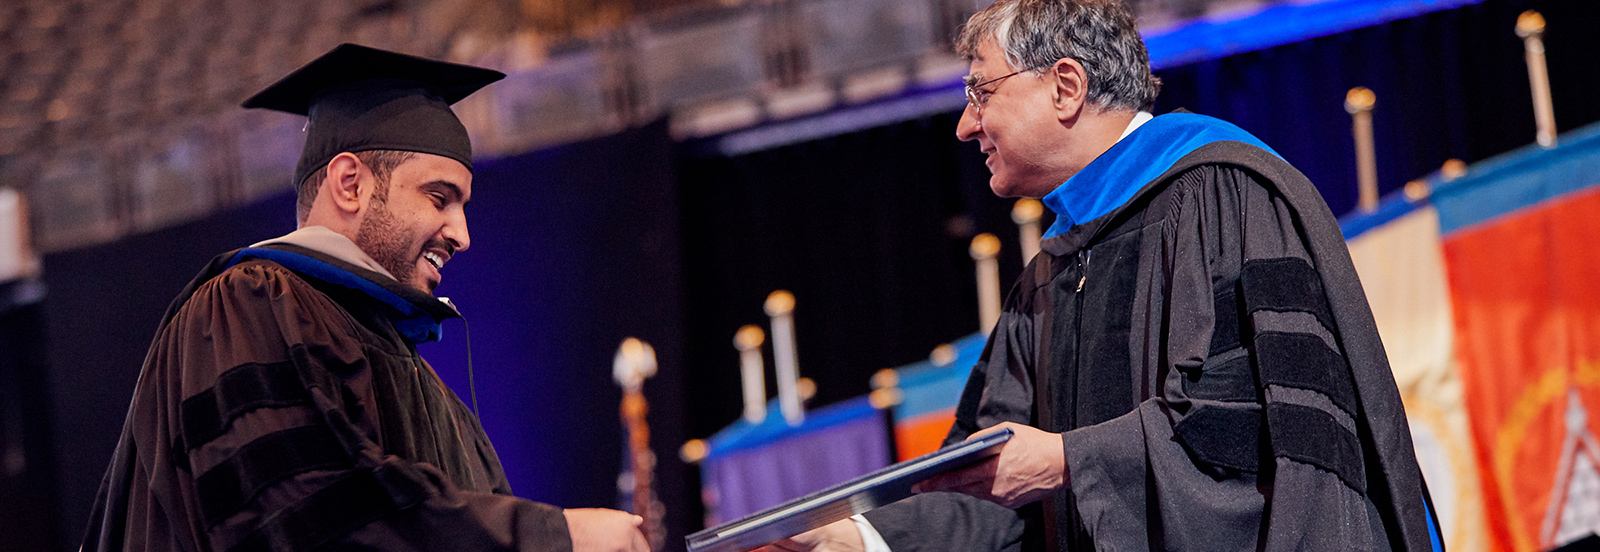 male student shakes hand of dean while receiving diploma at Commencement